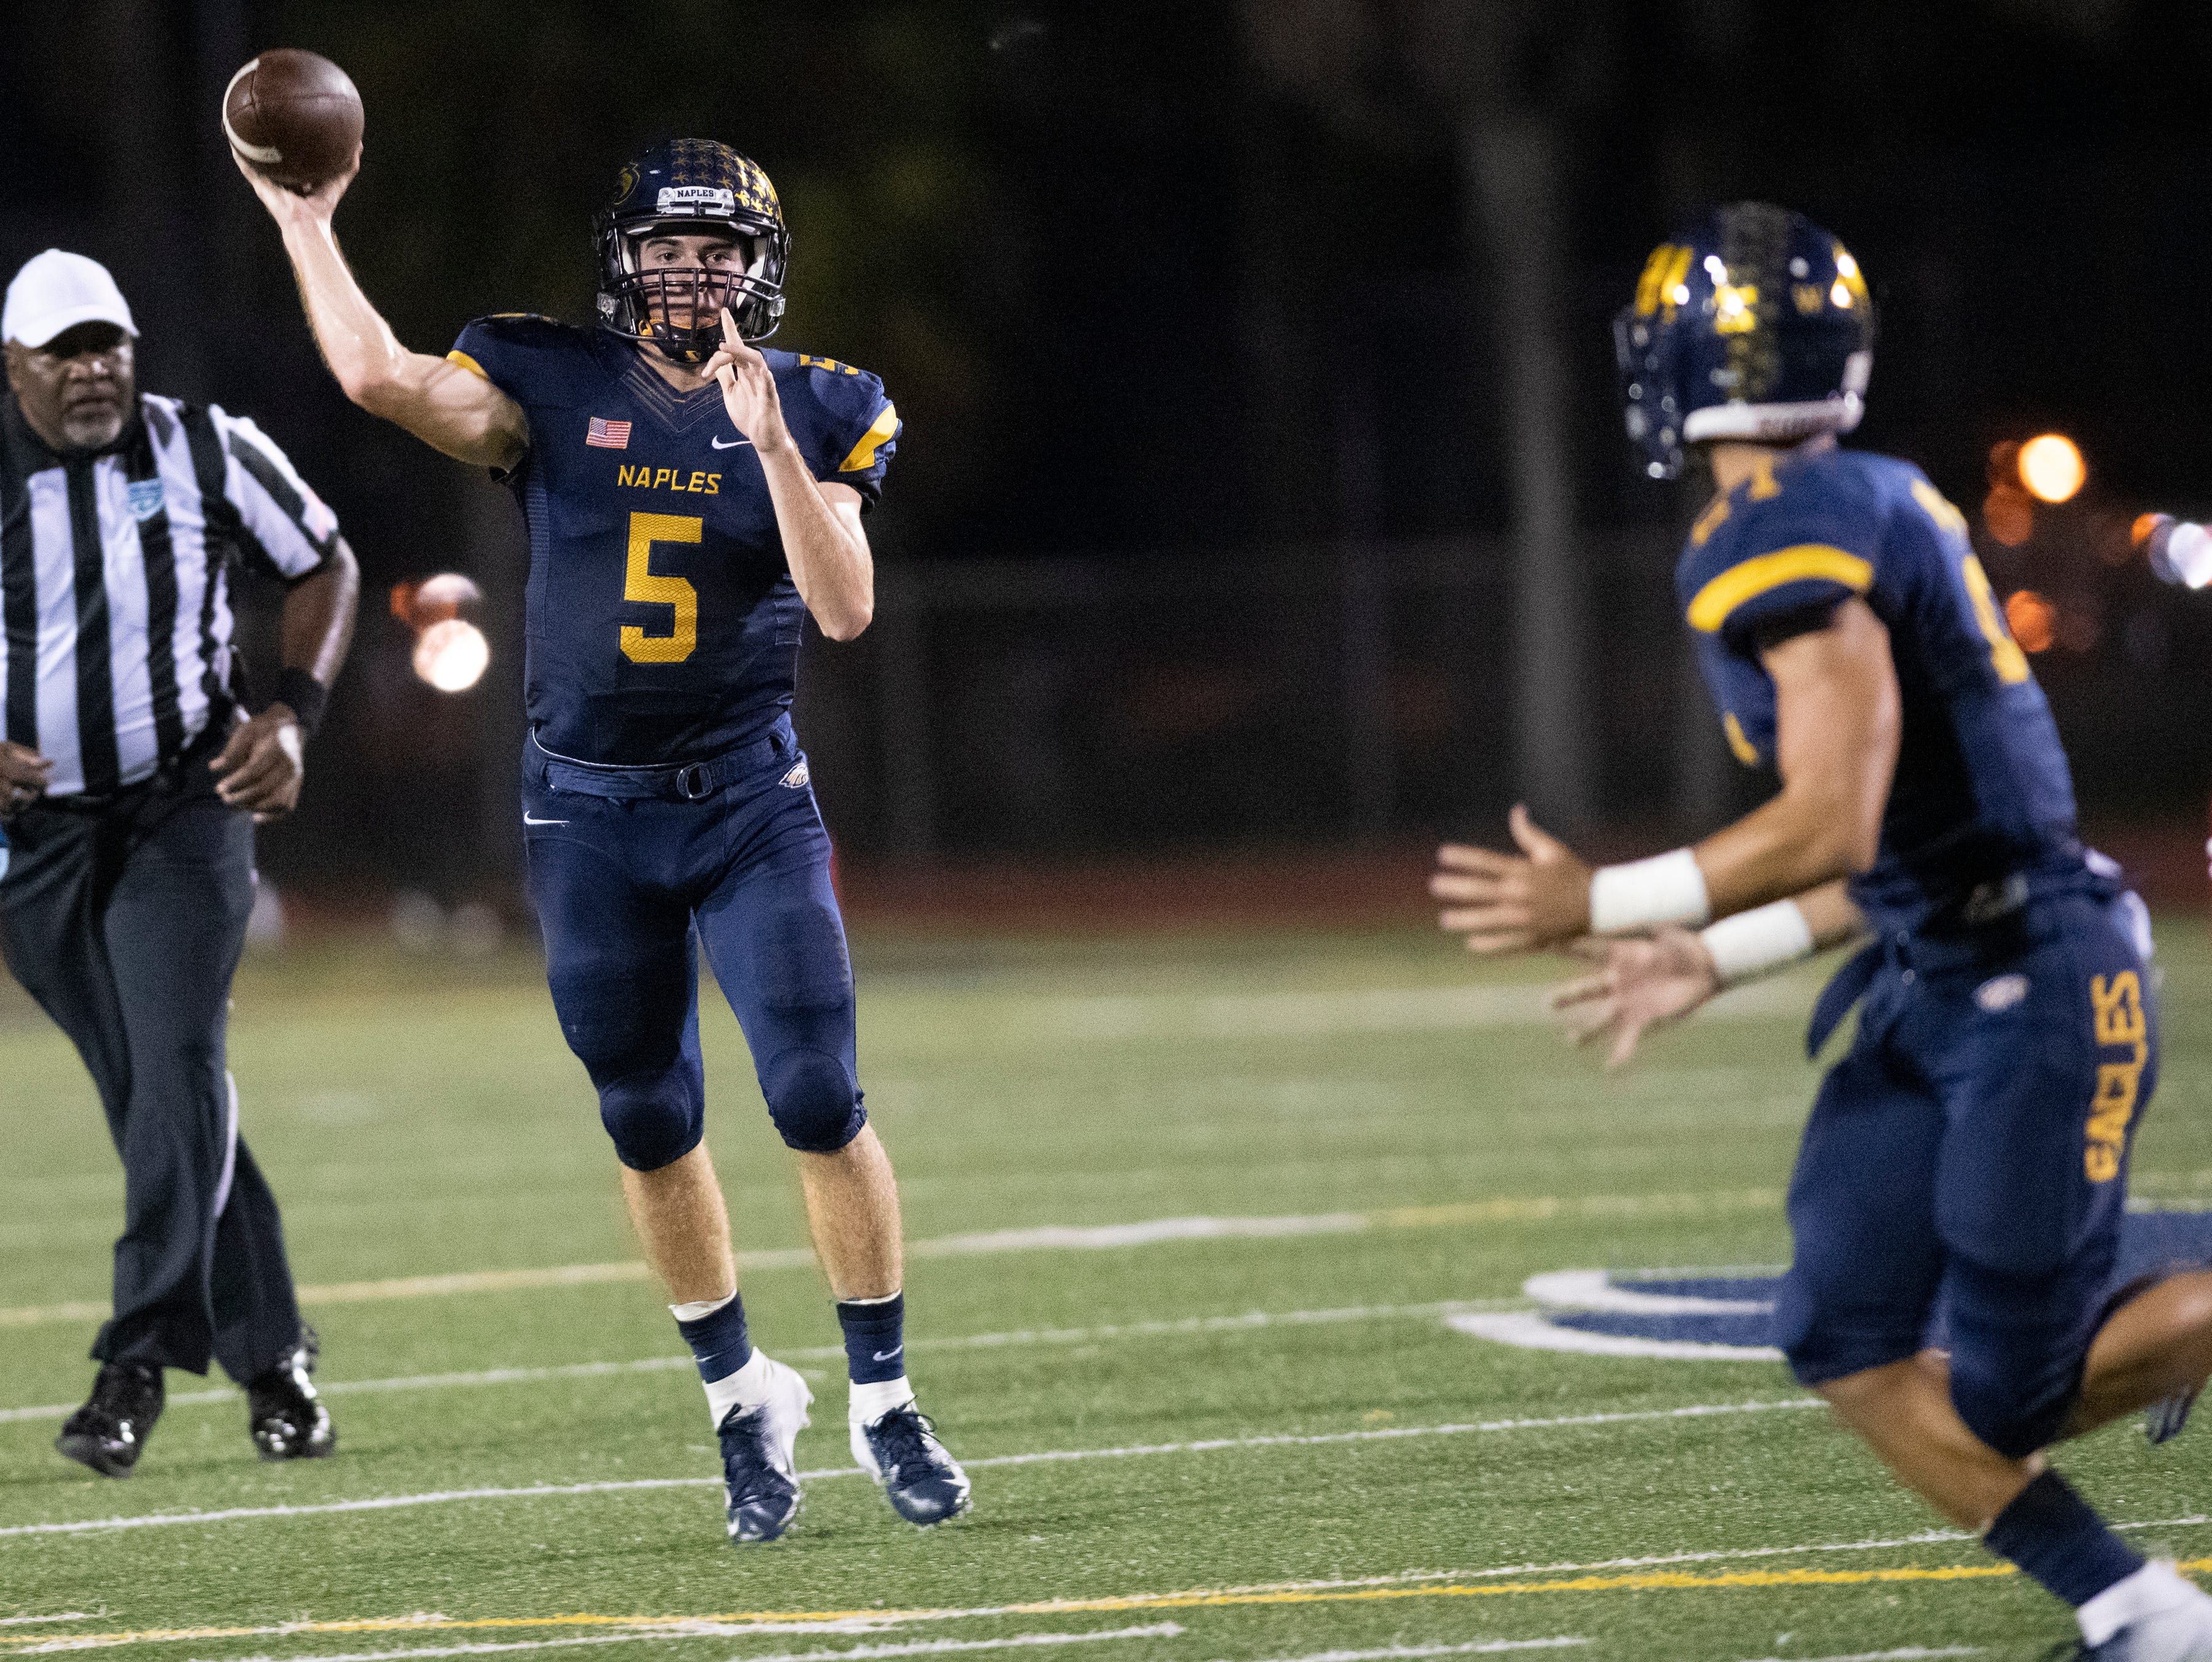 Naples quarterback Drew Wiltsie throws a pass to Chase Bertucci during the Class 6A regional quarterfinal playoff game against Lehigh at Naples High on Friday night, November 9, 2018.